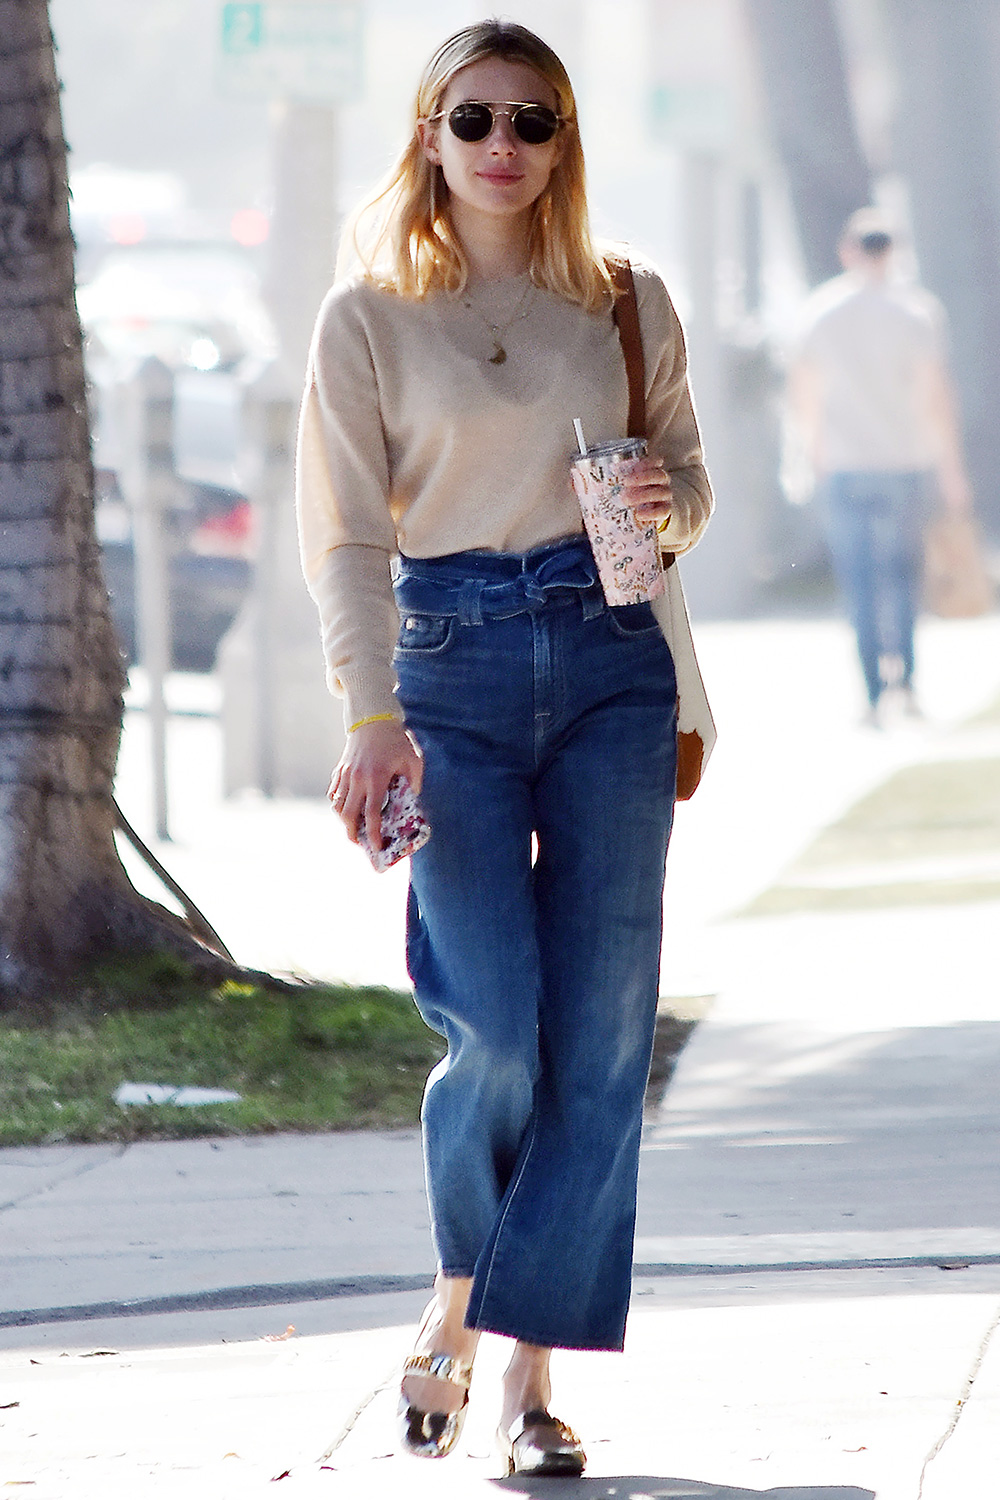 Emma Roberts strolling in Bveerly Hills. 08 Feb 2020